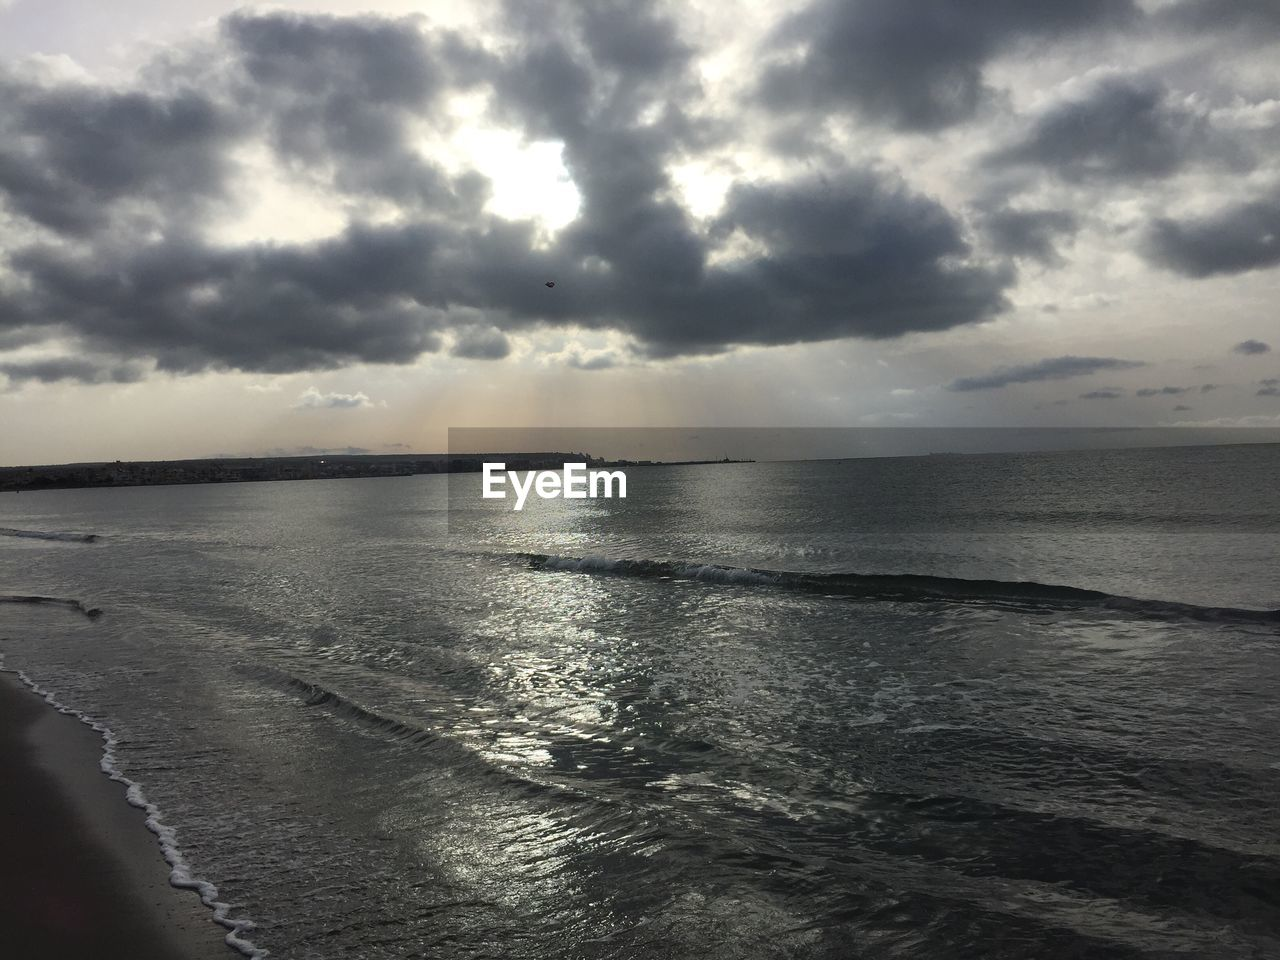 sea, water, horizon over water, sky, nature, cloud - sky, tranquility, scenics, tranquil scene, beauty in nature, no people, outdoors, beach, day, storm cloud, sunset